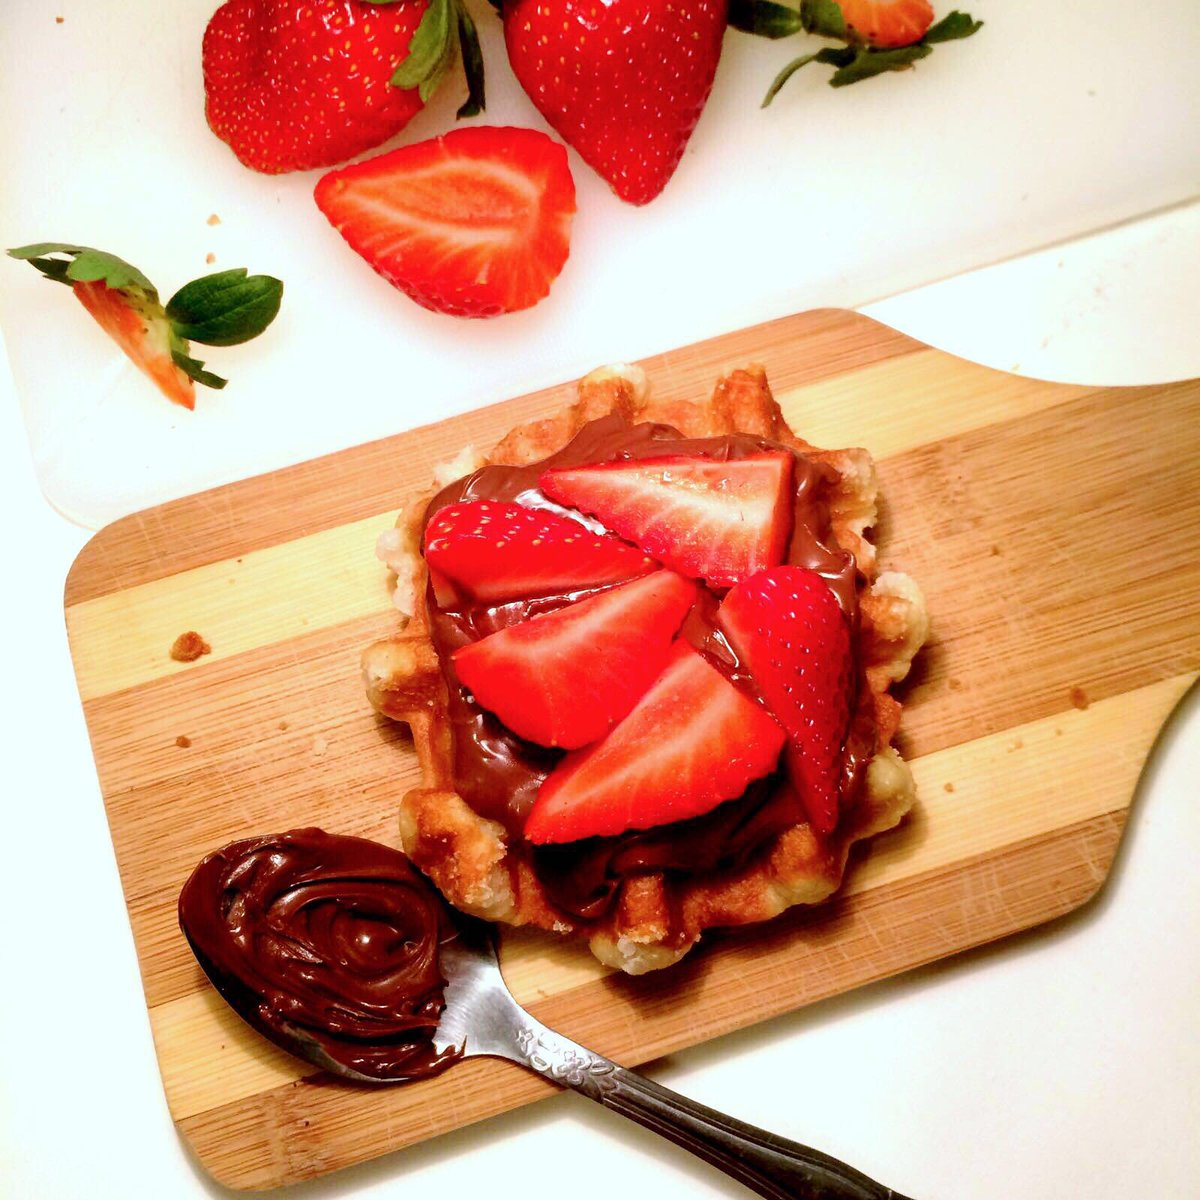 Nutella + strawberries + our de liege wafel = excellent combination  #BelgianBoys #chubbyandskinny #deliege #wafel<br>http://pic.twitter.com/PExyF4h4wT